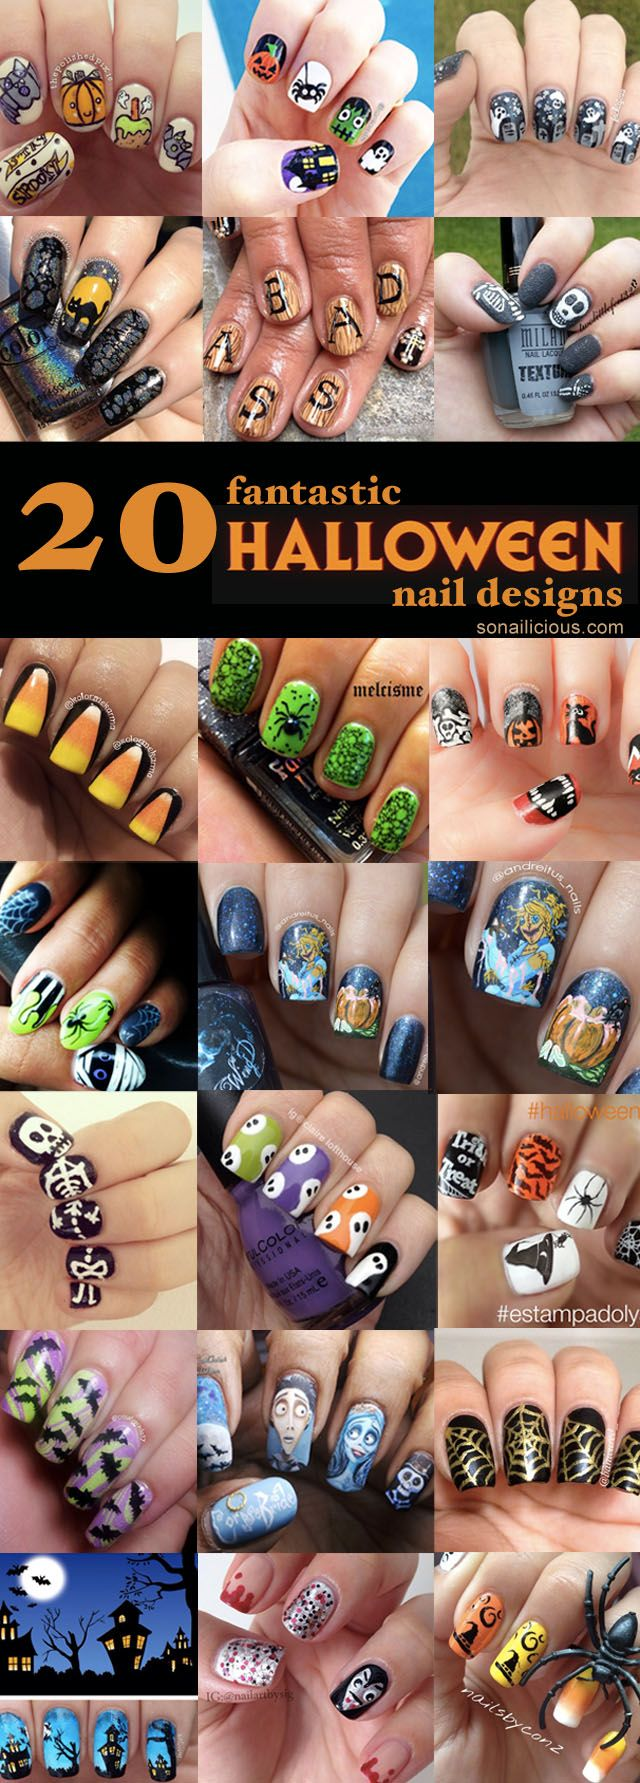 Halloween Nail Designs || 20 Fantastic Halloween Nail Designs